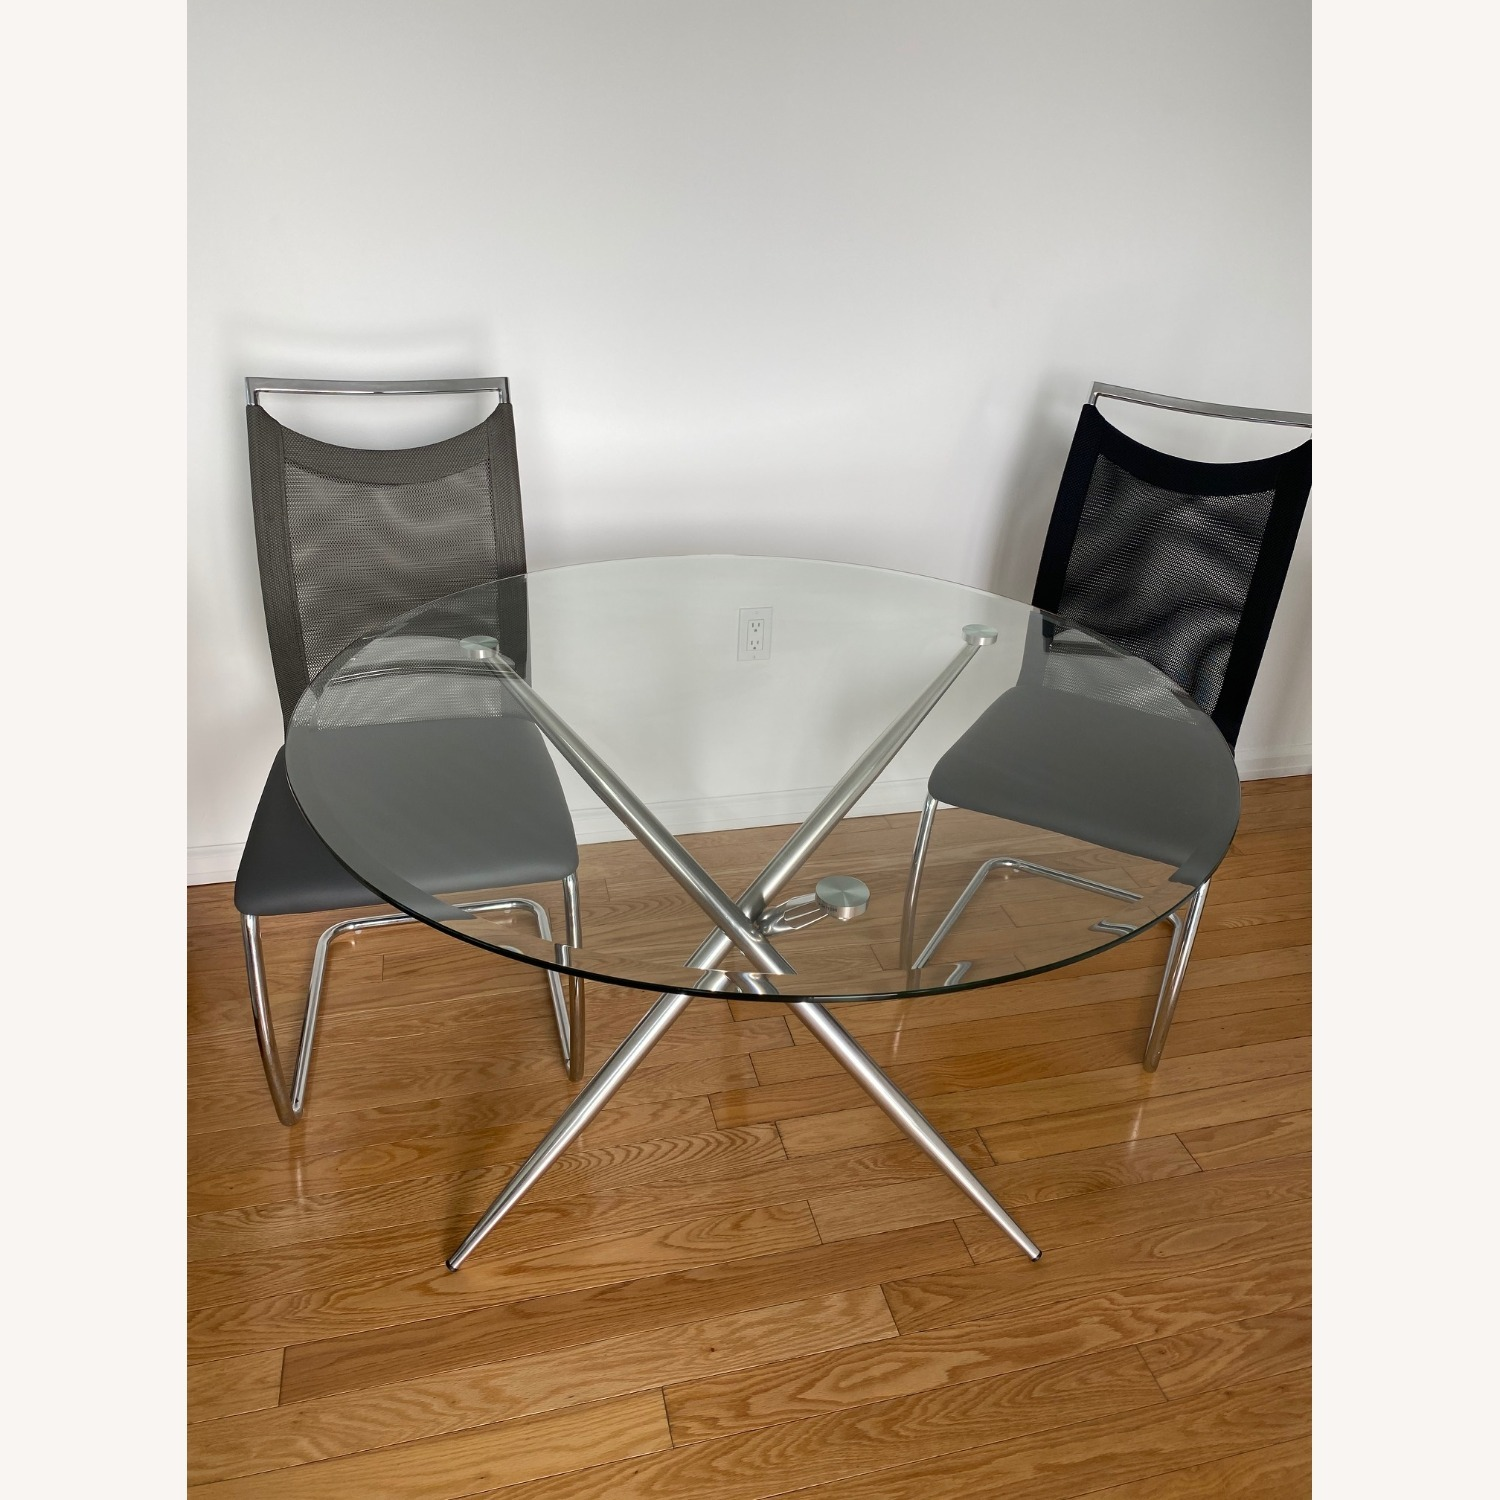 Raymour & Flanigan Adams Glass Dining Set - image-1